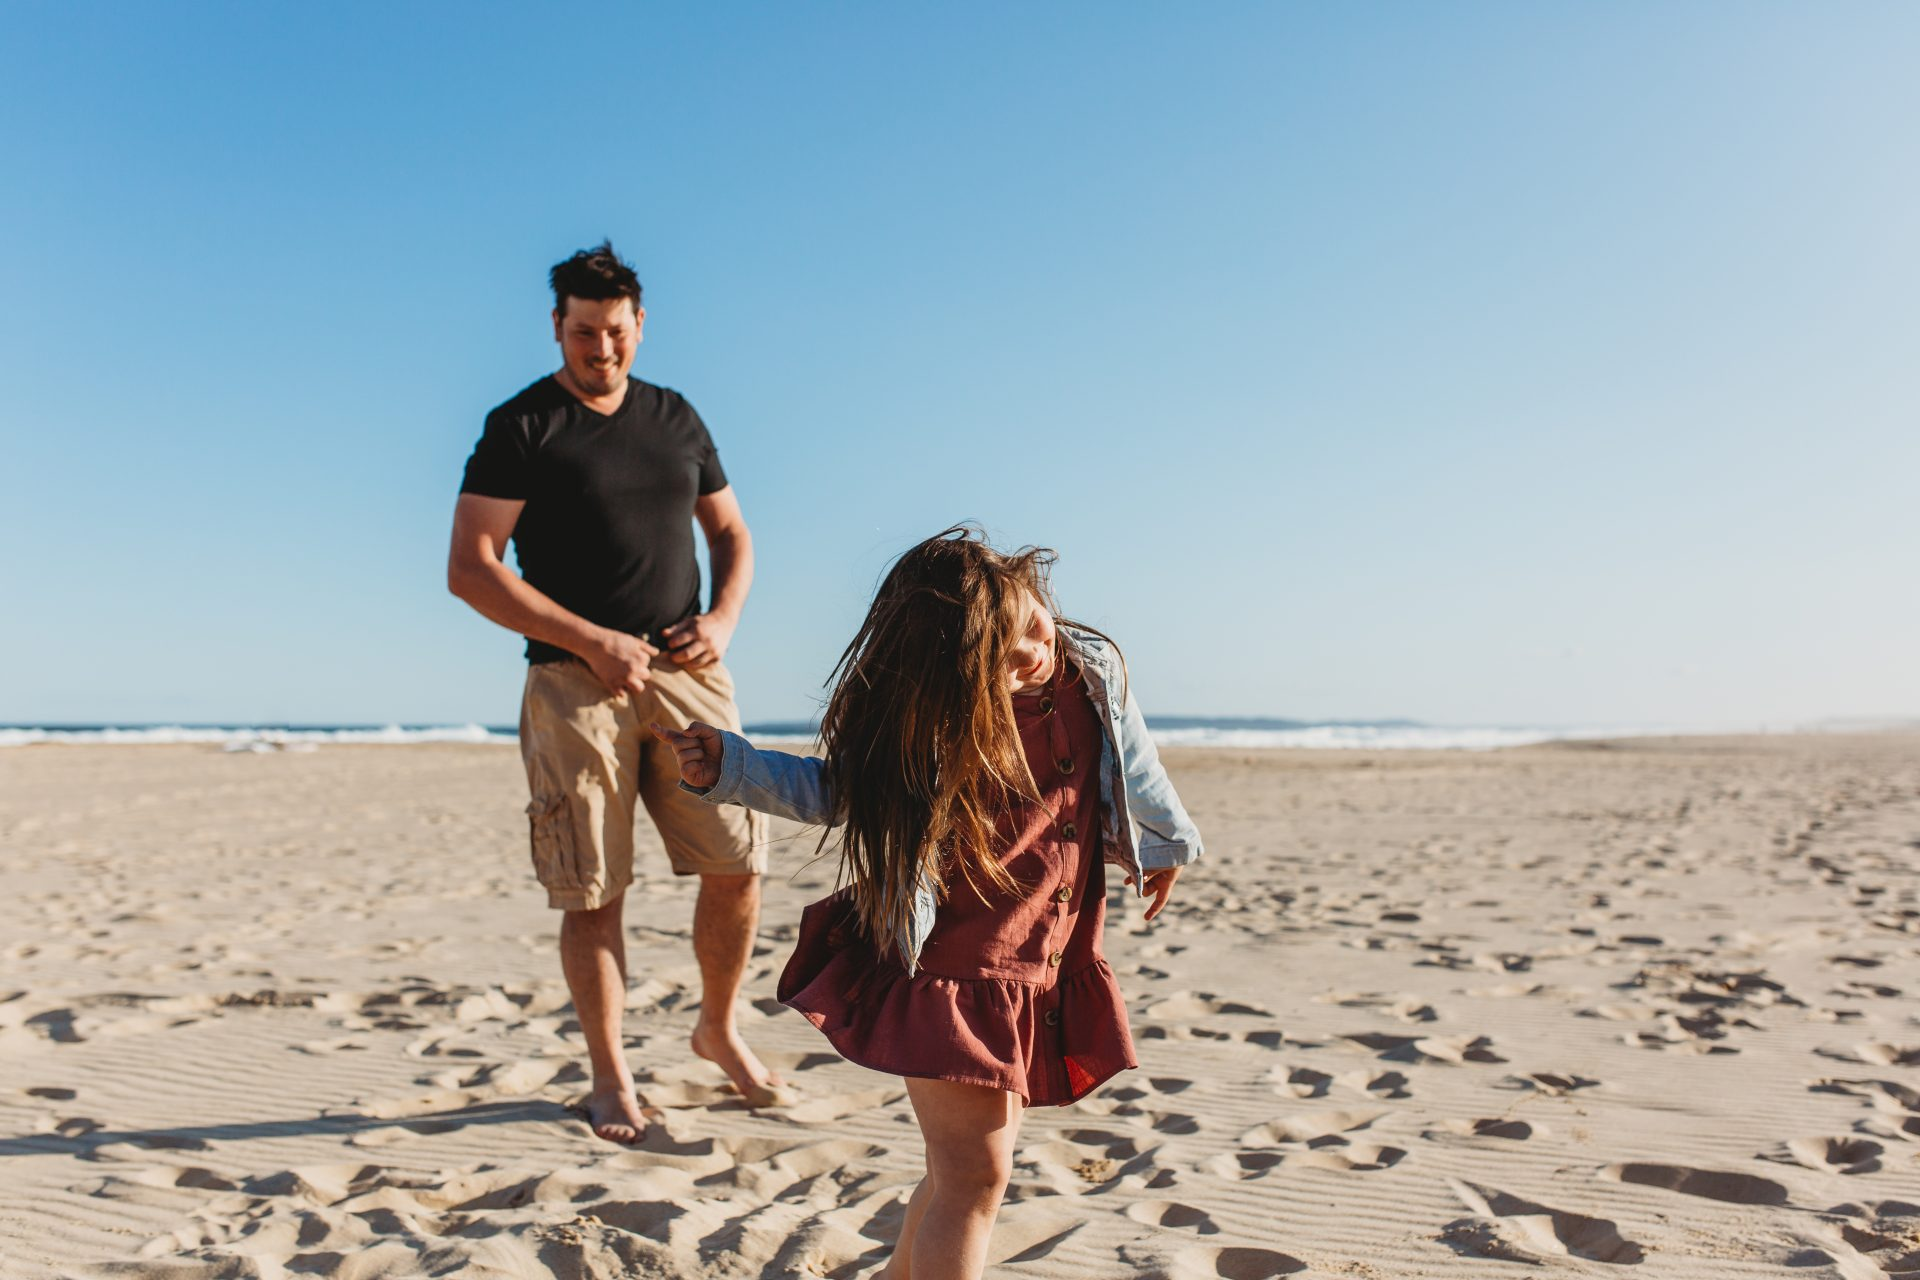 Young girl dancing on the sand while her dad watches on